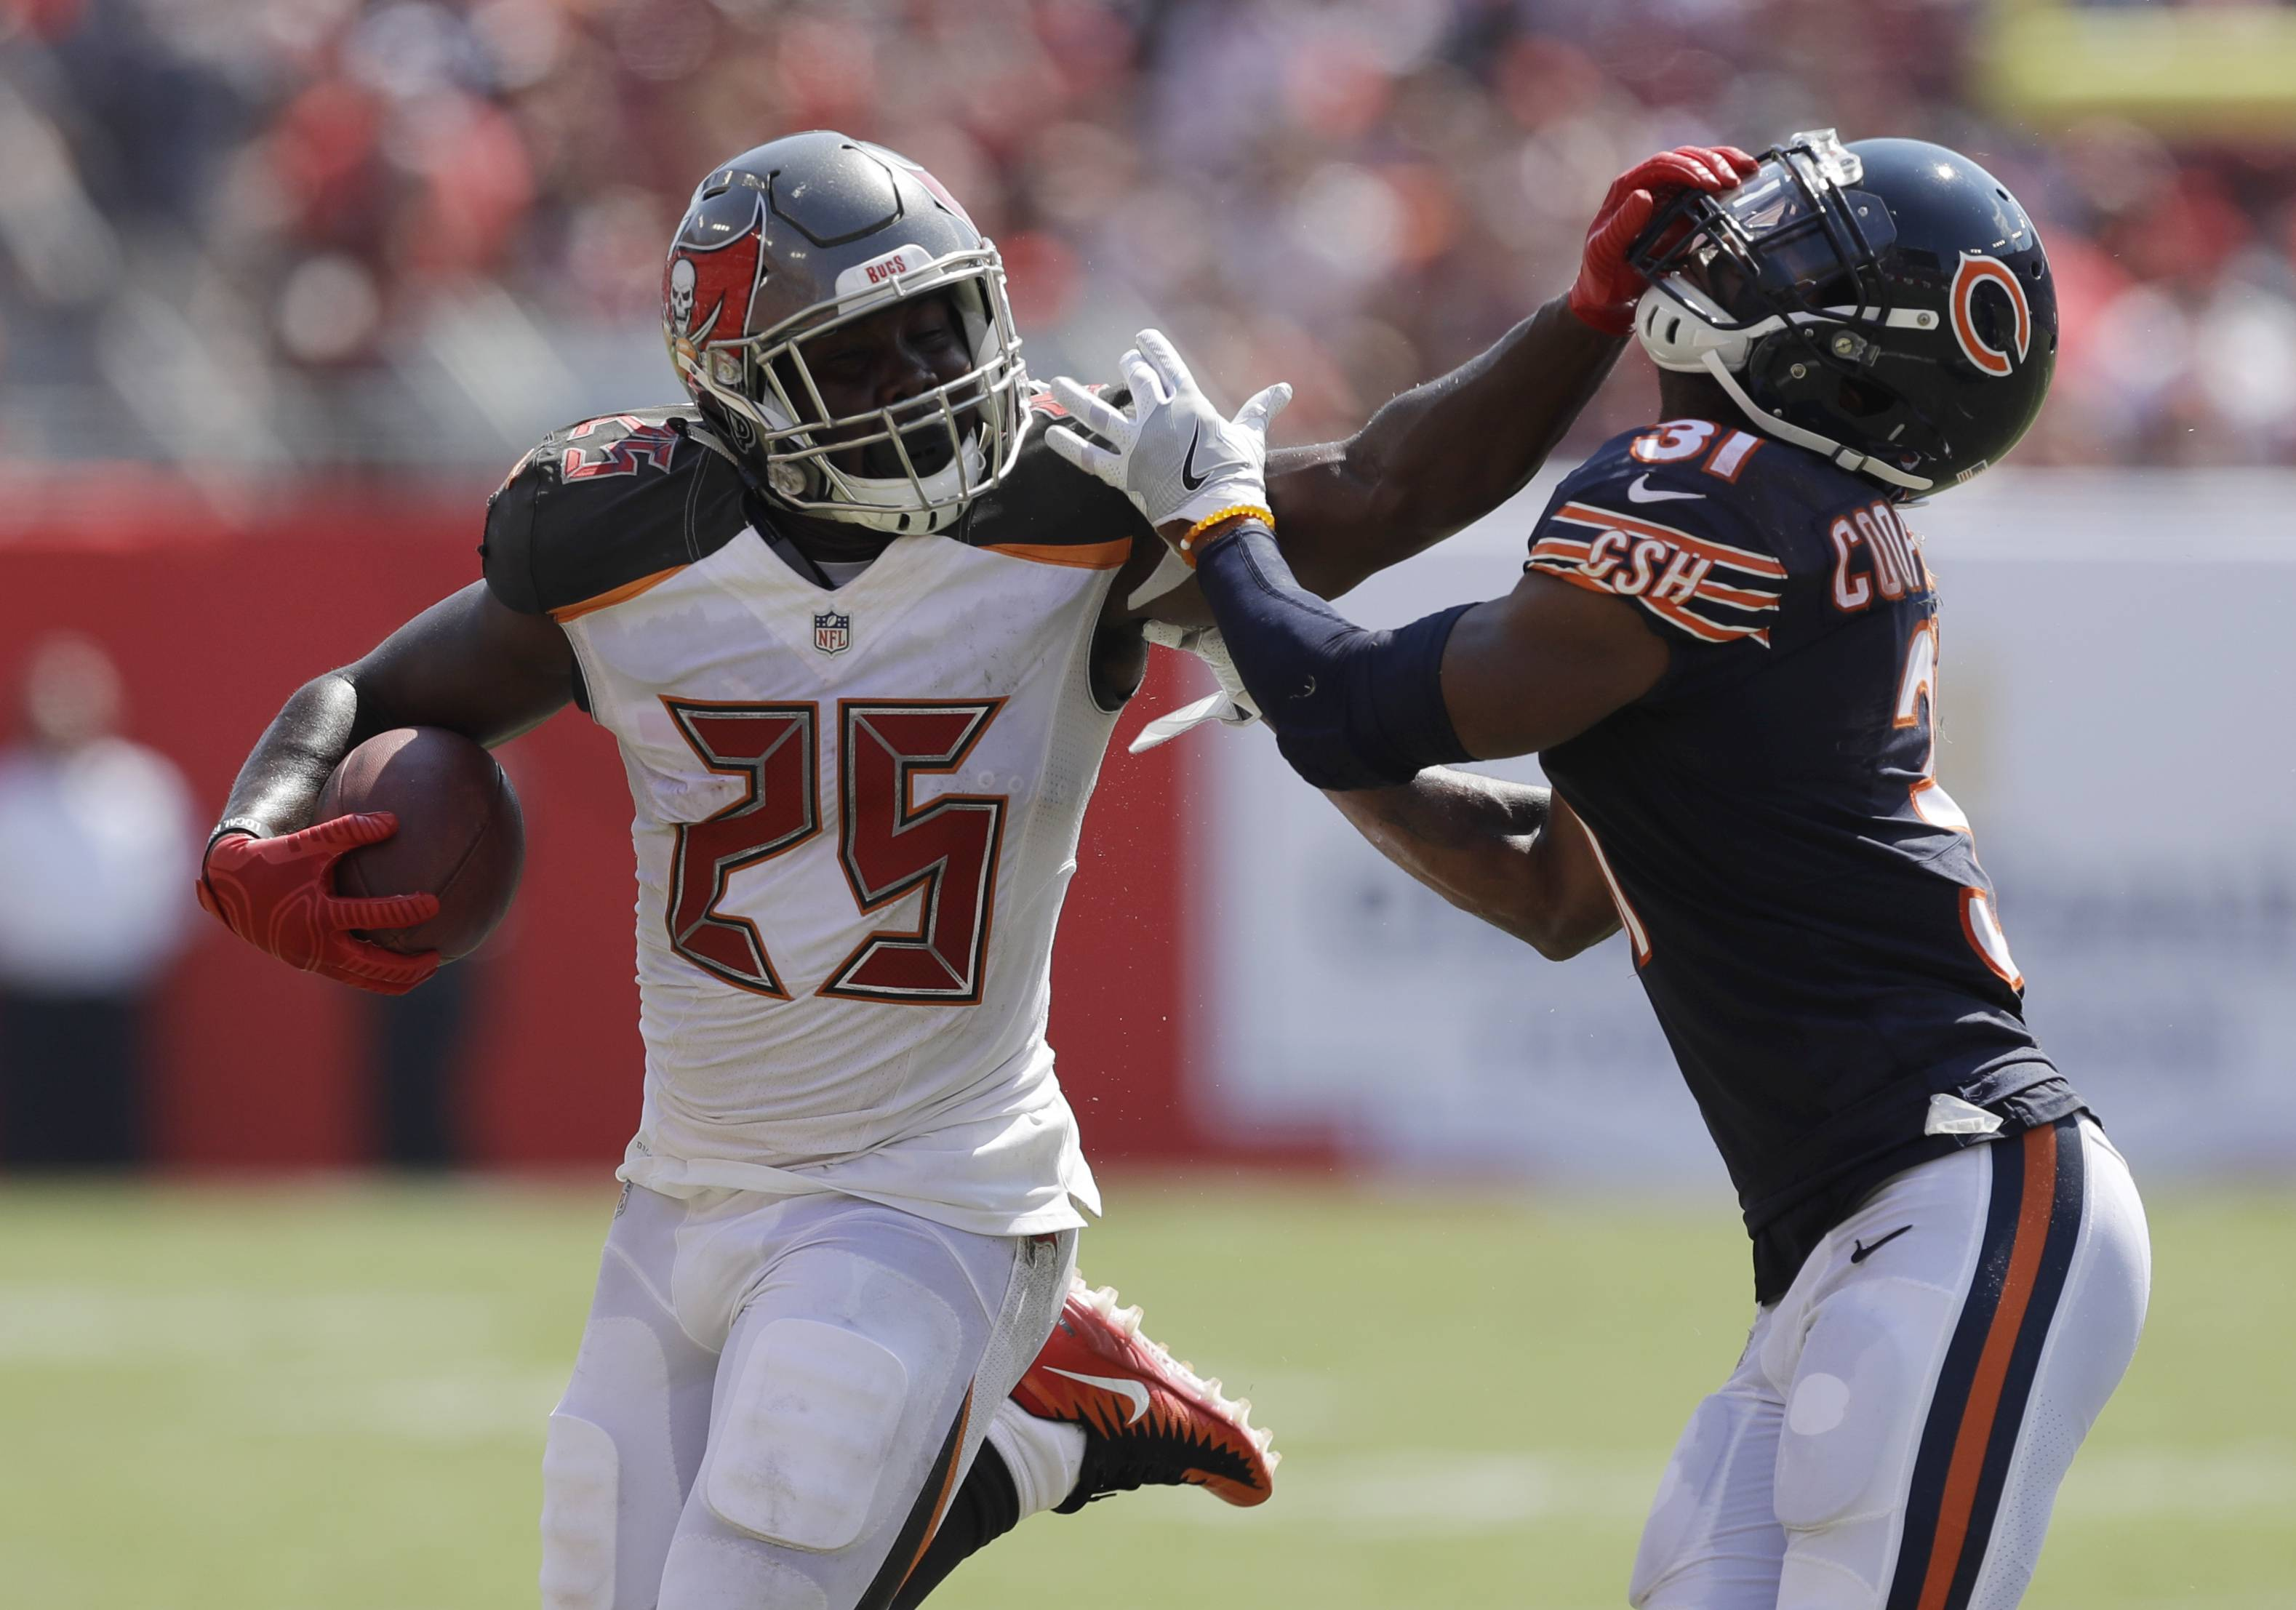 Images: Bears fall to the Buccaneers 7-29 in Tampa